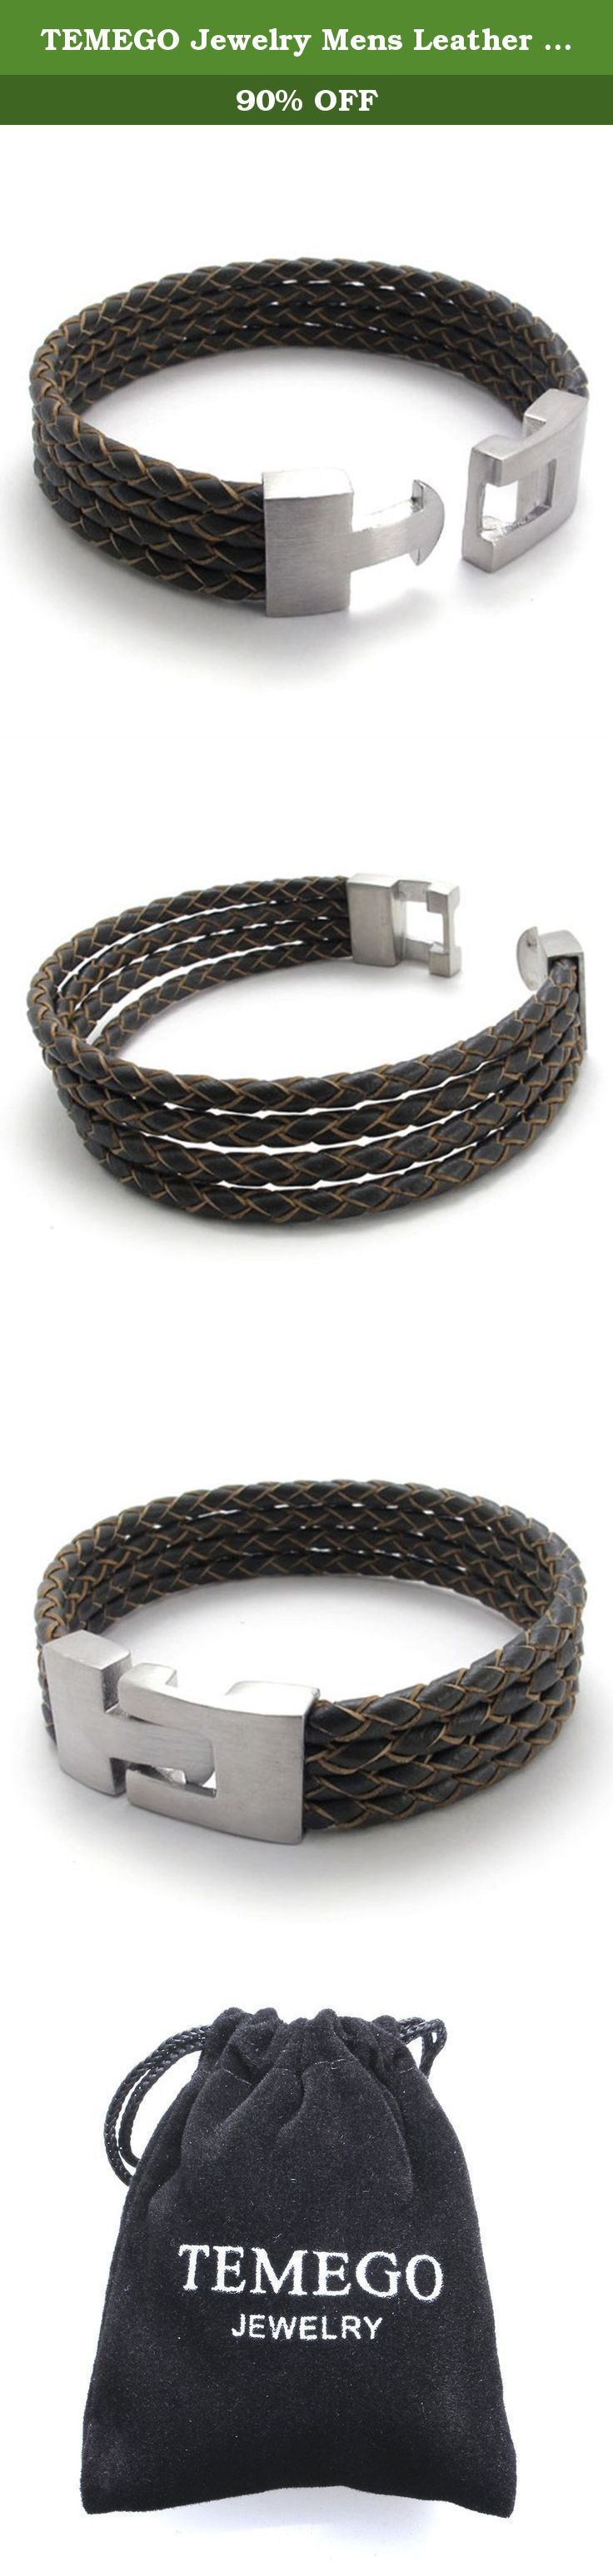 """TEMEGO Jewelry Mens Leather Braided Bracelet,Stainless Steel Clasp,Brown-8"""". Stainless Steel Jeweley has gained increasing popularity in men's jewelry. It does not tarnish and oxidized, which can last longer than other types of jewelry. Stainless steel jewelry has an amazing property of anti-allergice since they are often made without nickel."""